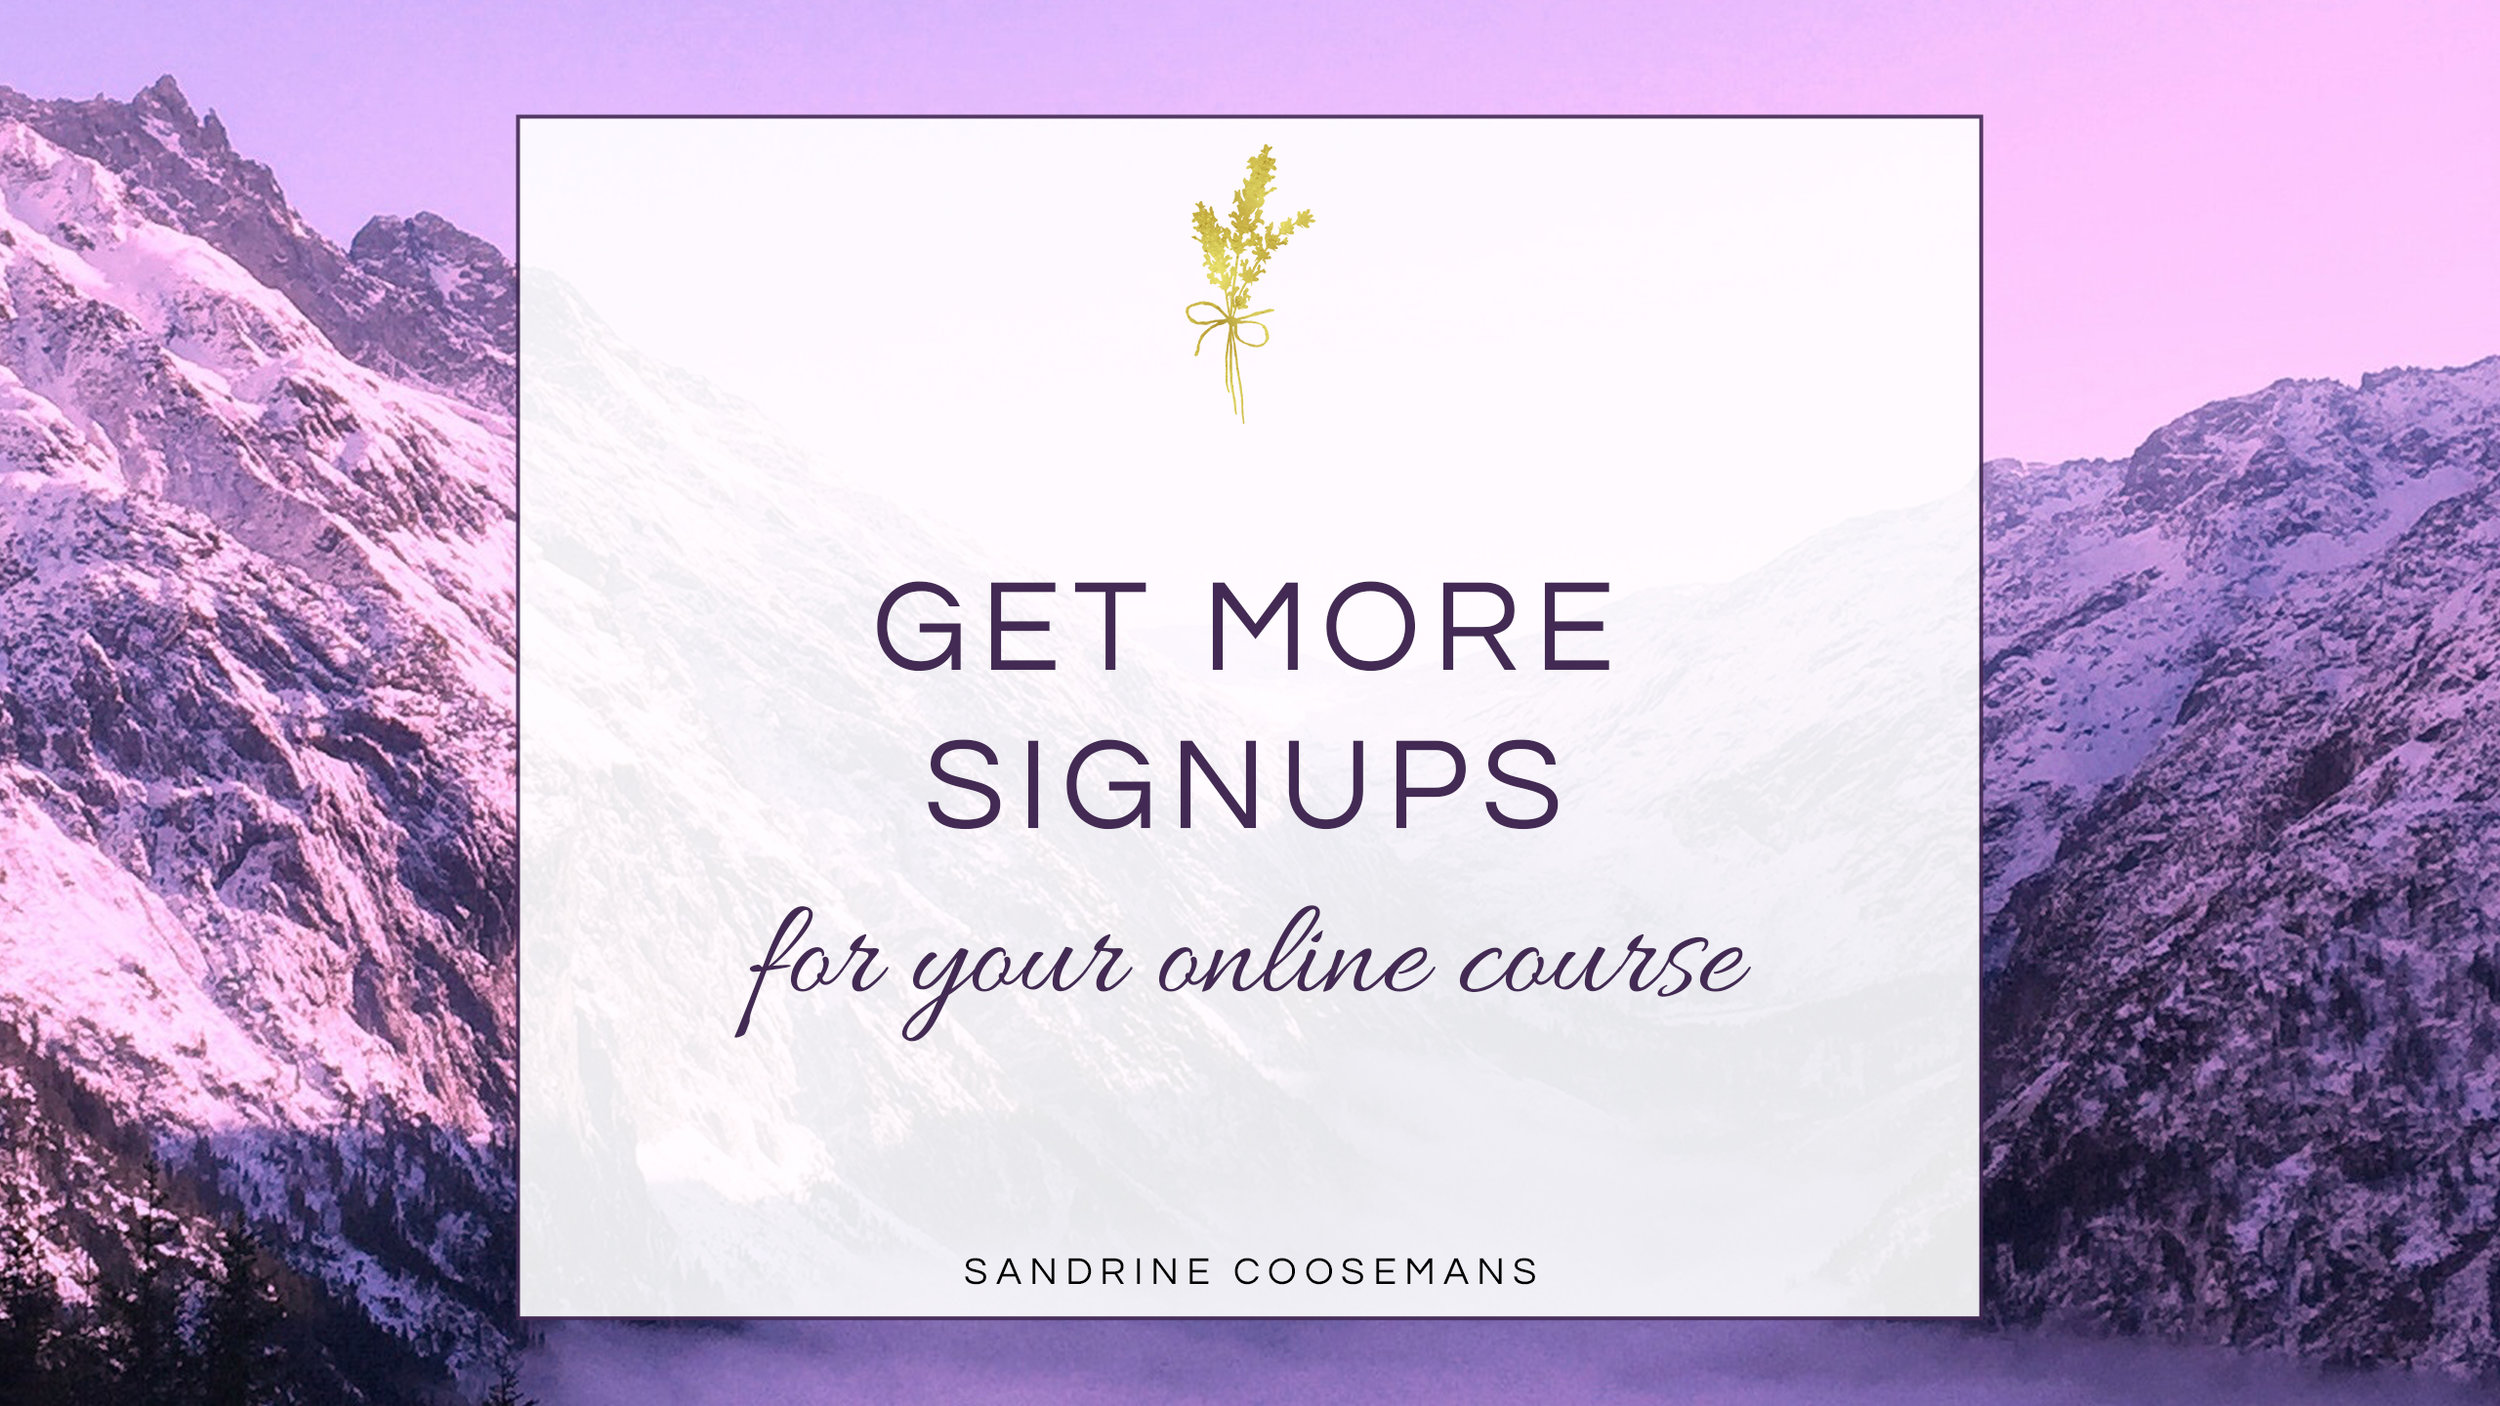 Selling your online course - When launching an online course, should you keep the cart open - or close it after a limited amount of time? Which will get you more signups - and which is more suitable for your type of course?